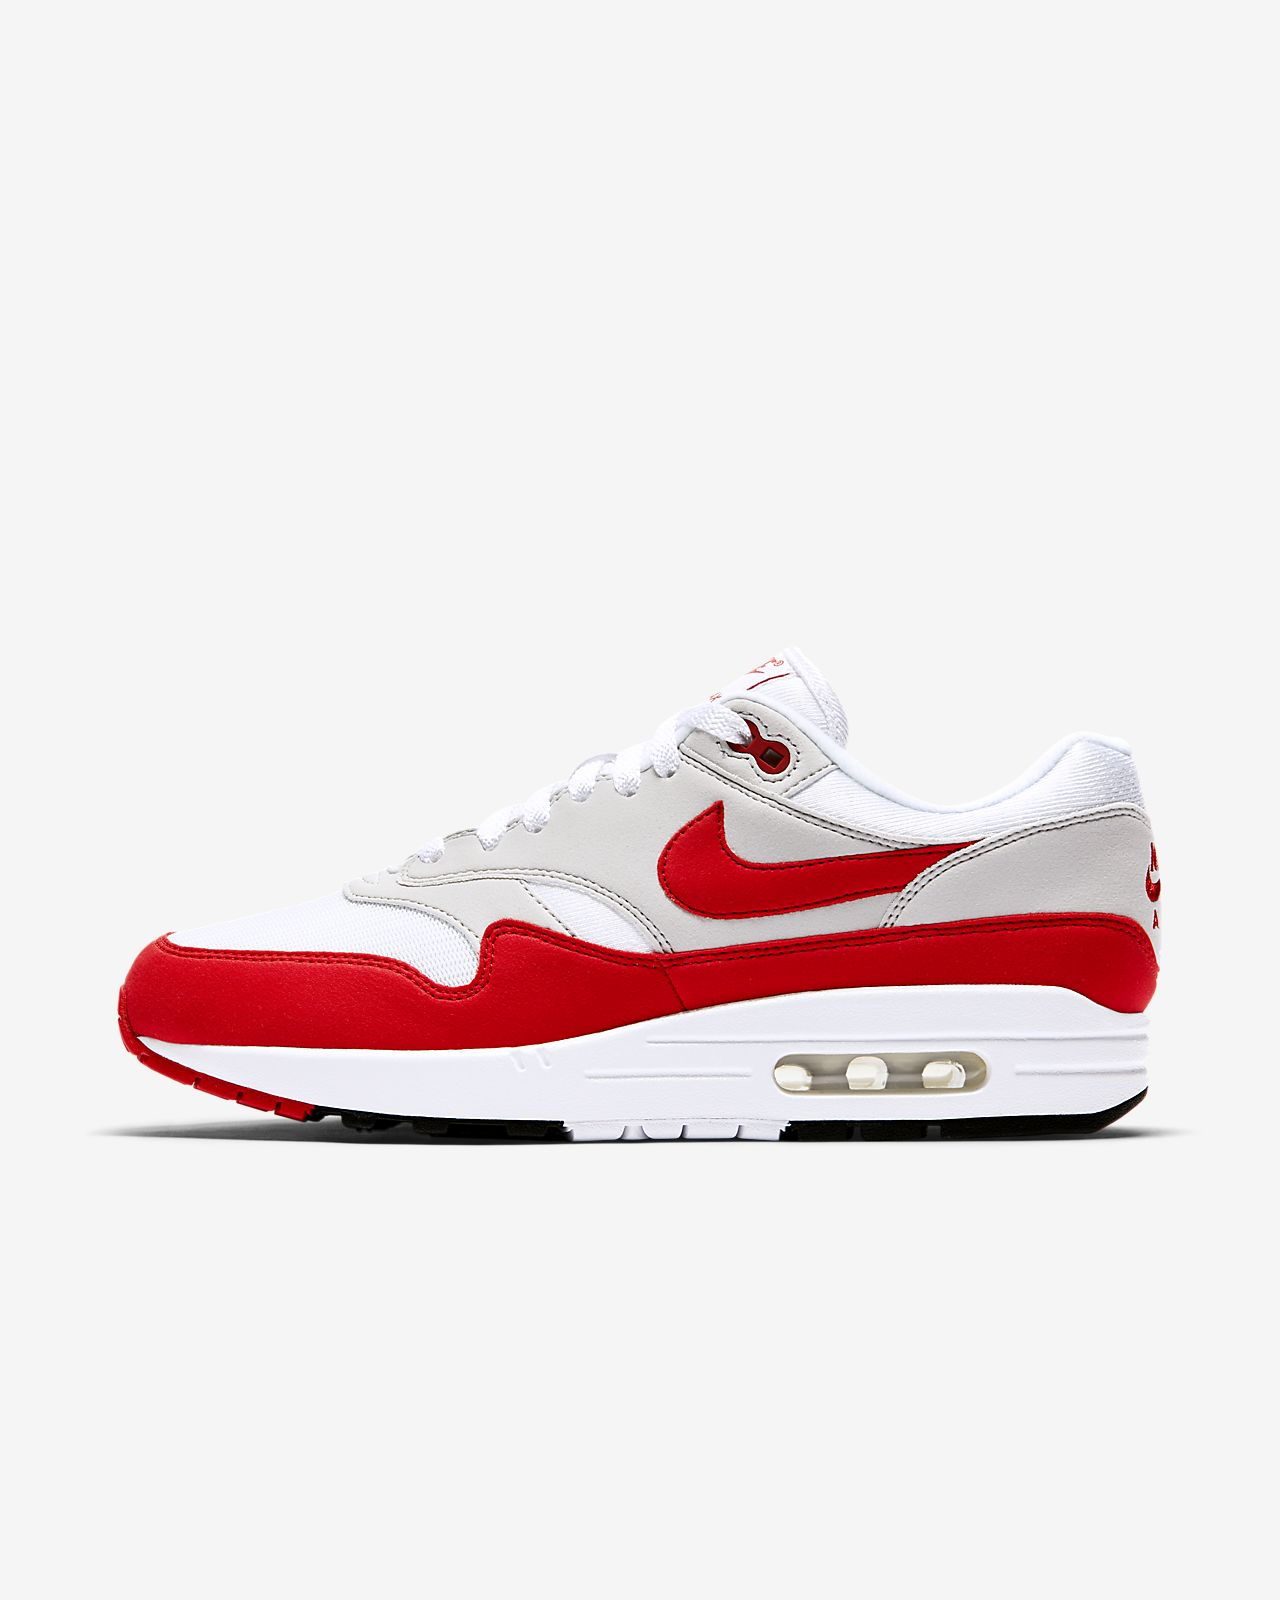 nike air max 1 anniversary red nz